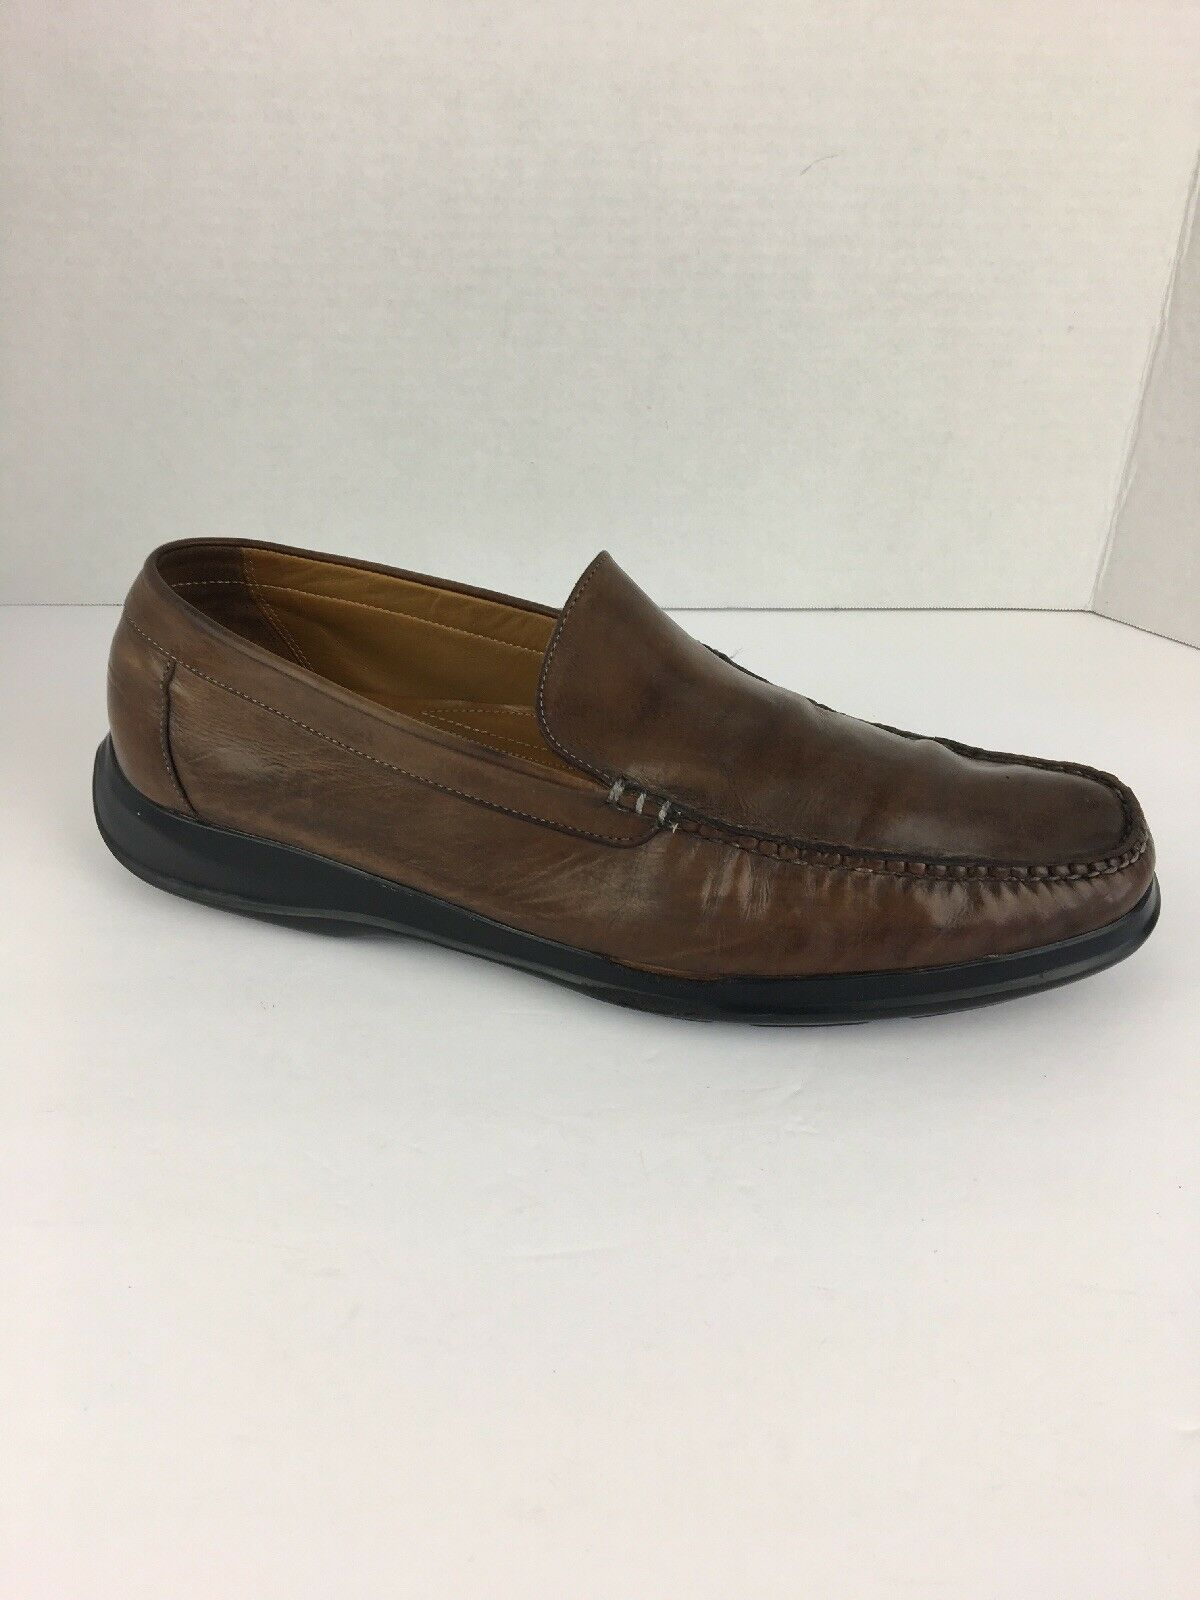 Cole Haan Air Mens Shoes 12 M Dempsey Loafer Brown Leather Cushion Comfort Sole